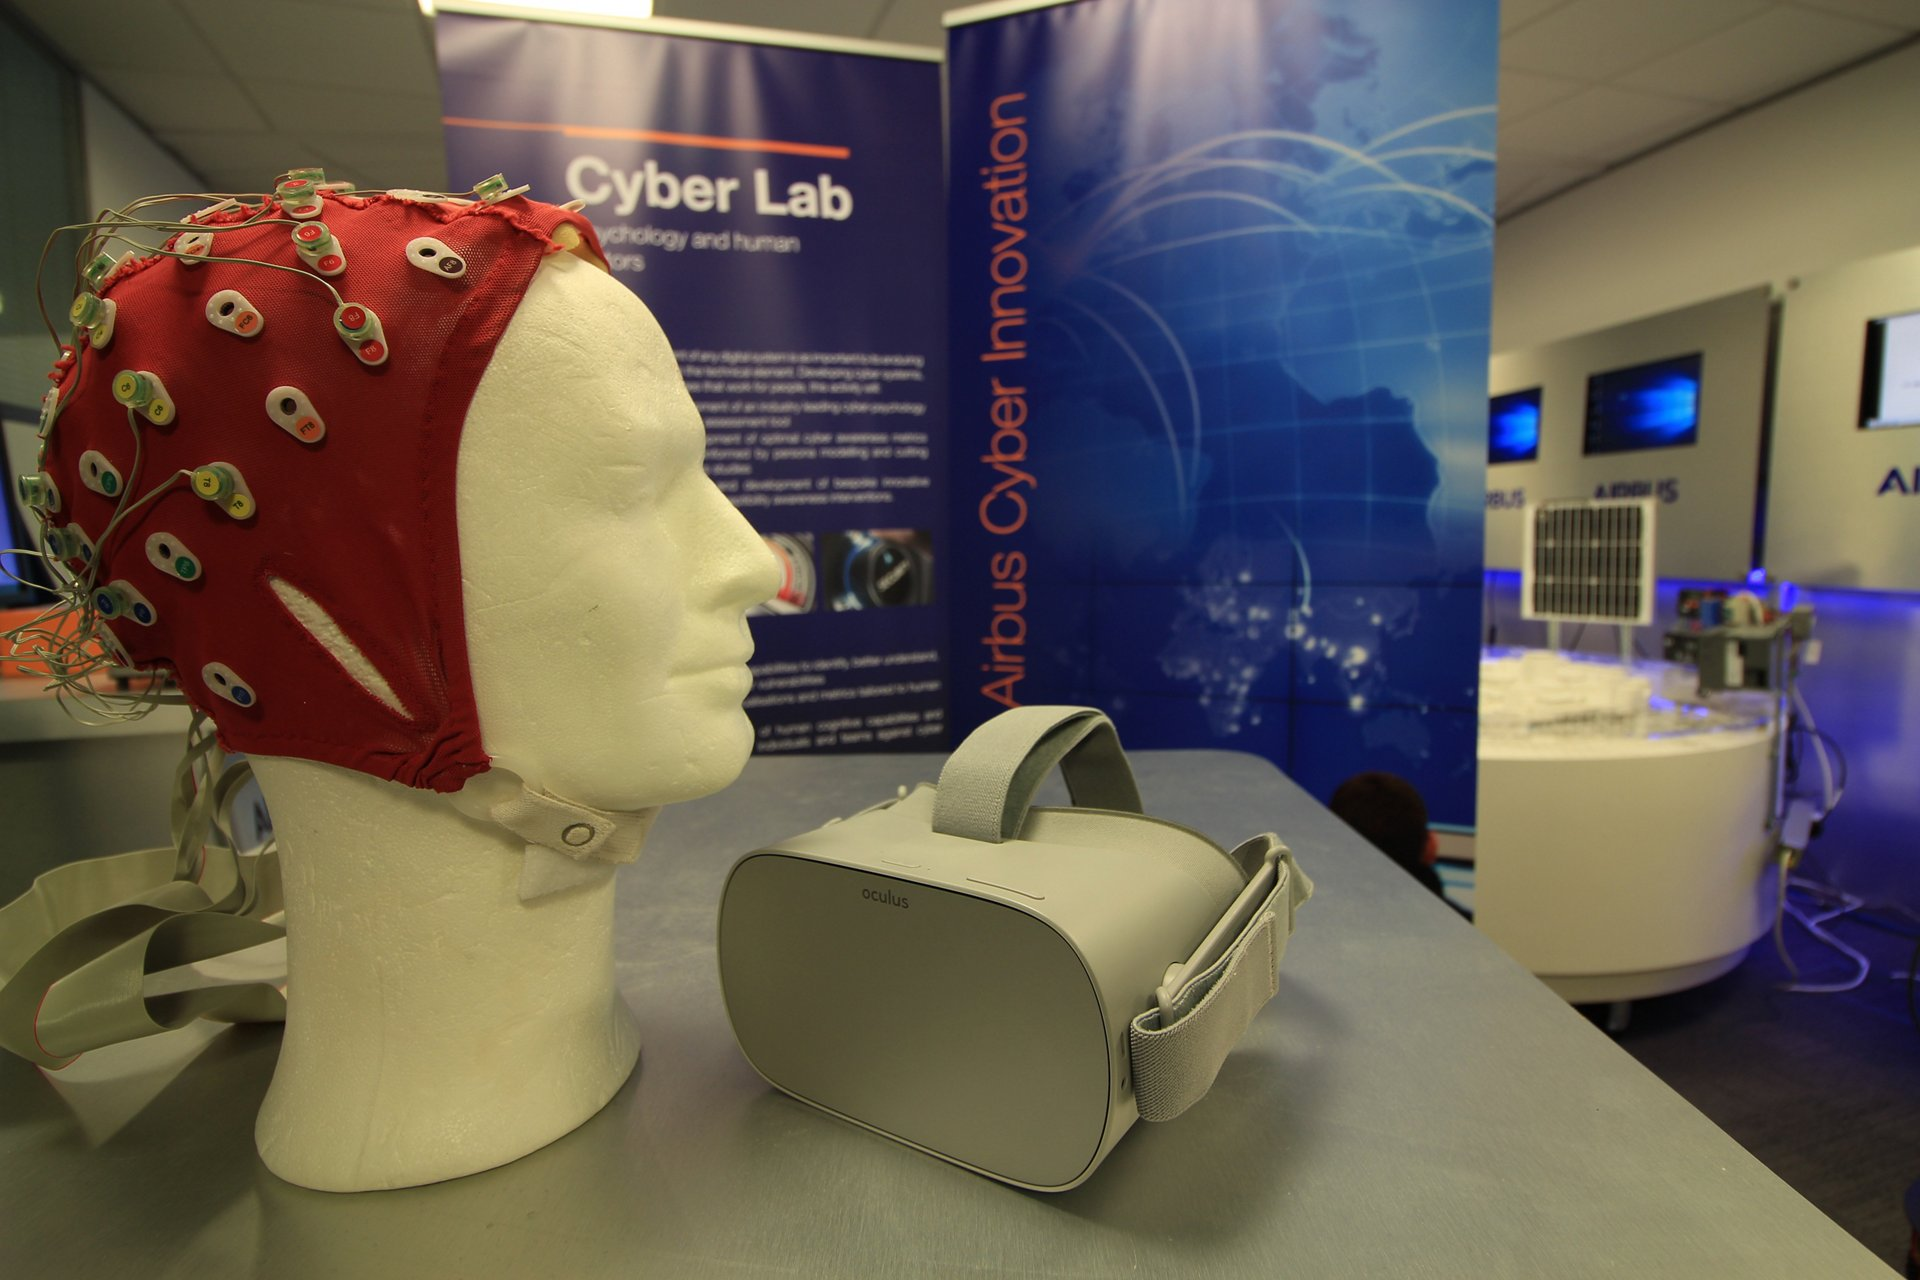 An exhibit stand promotes technologies related to CyberLab, a major security research initiative jointly funded by the Welsh government and Airbus.